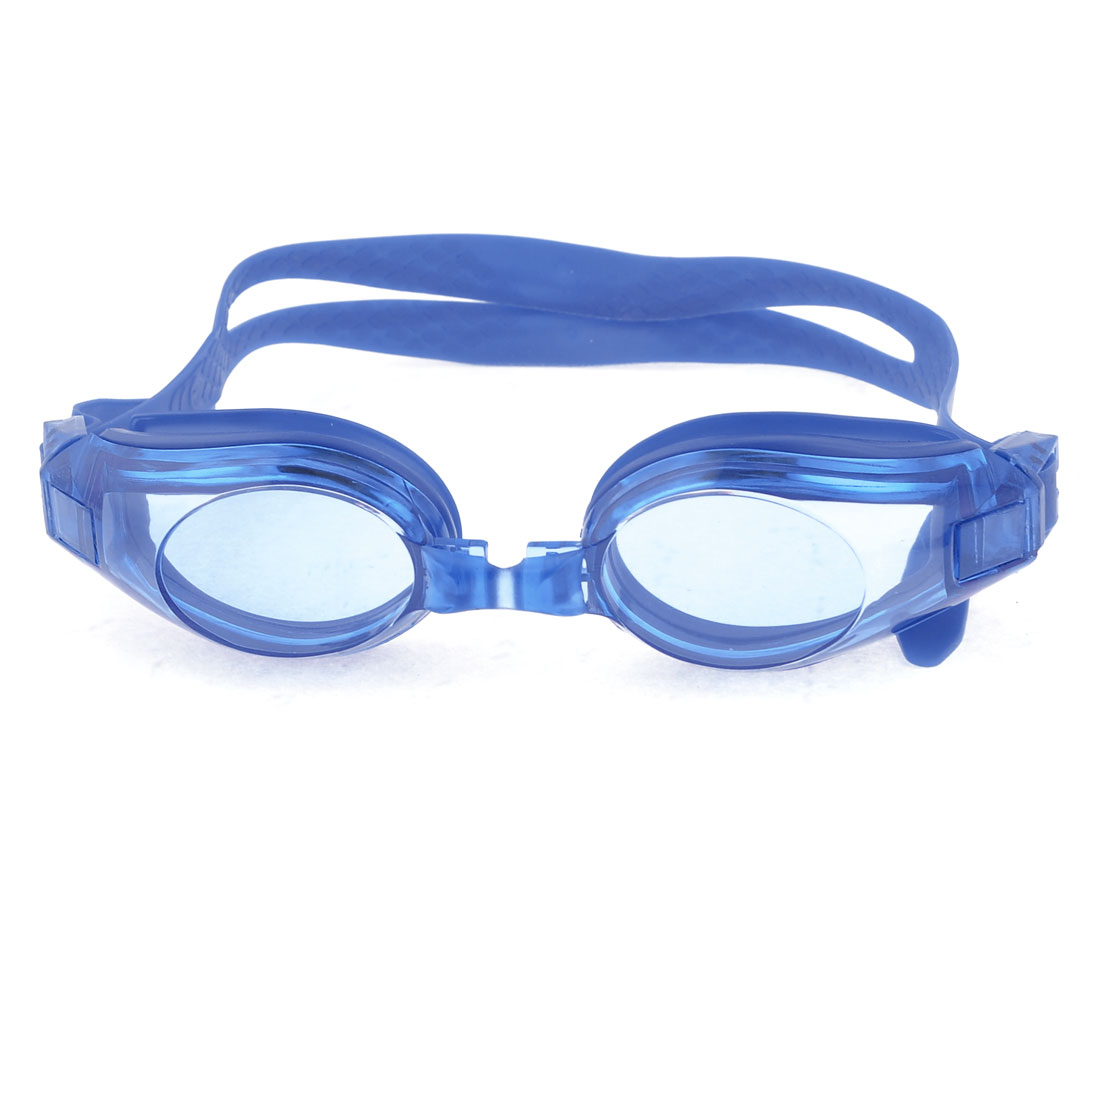 Blue Stretchy Anti-Slip Head Strap Swimming Goggles Set for Children